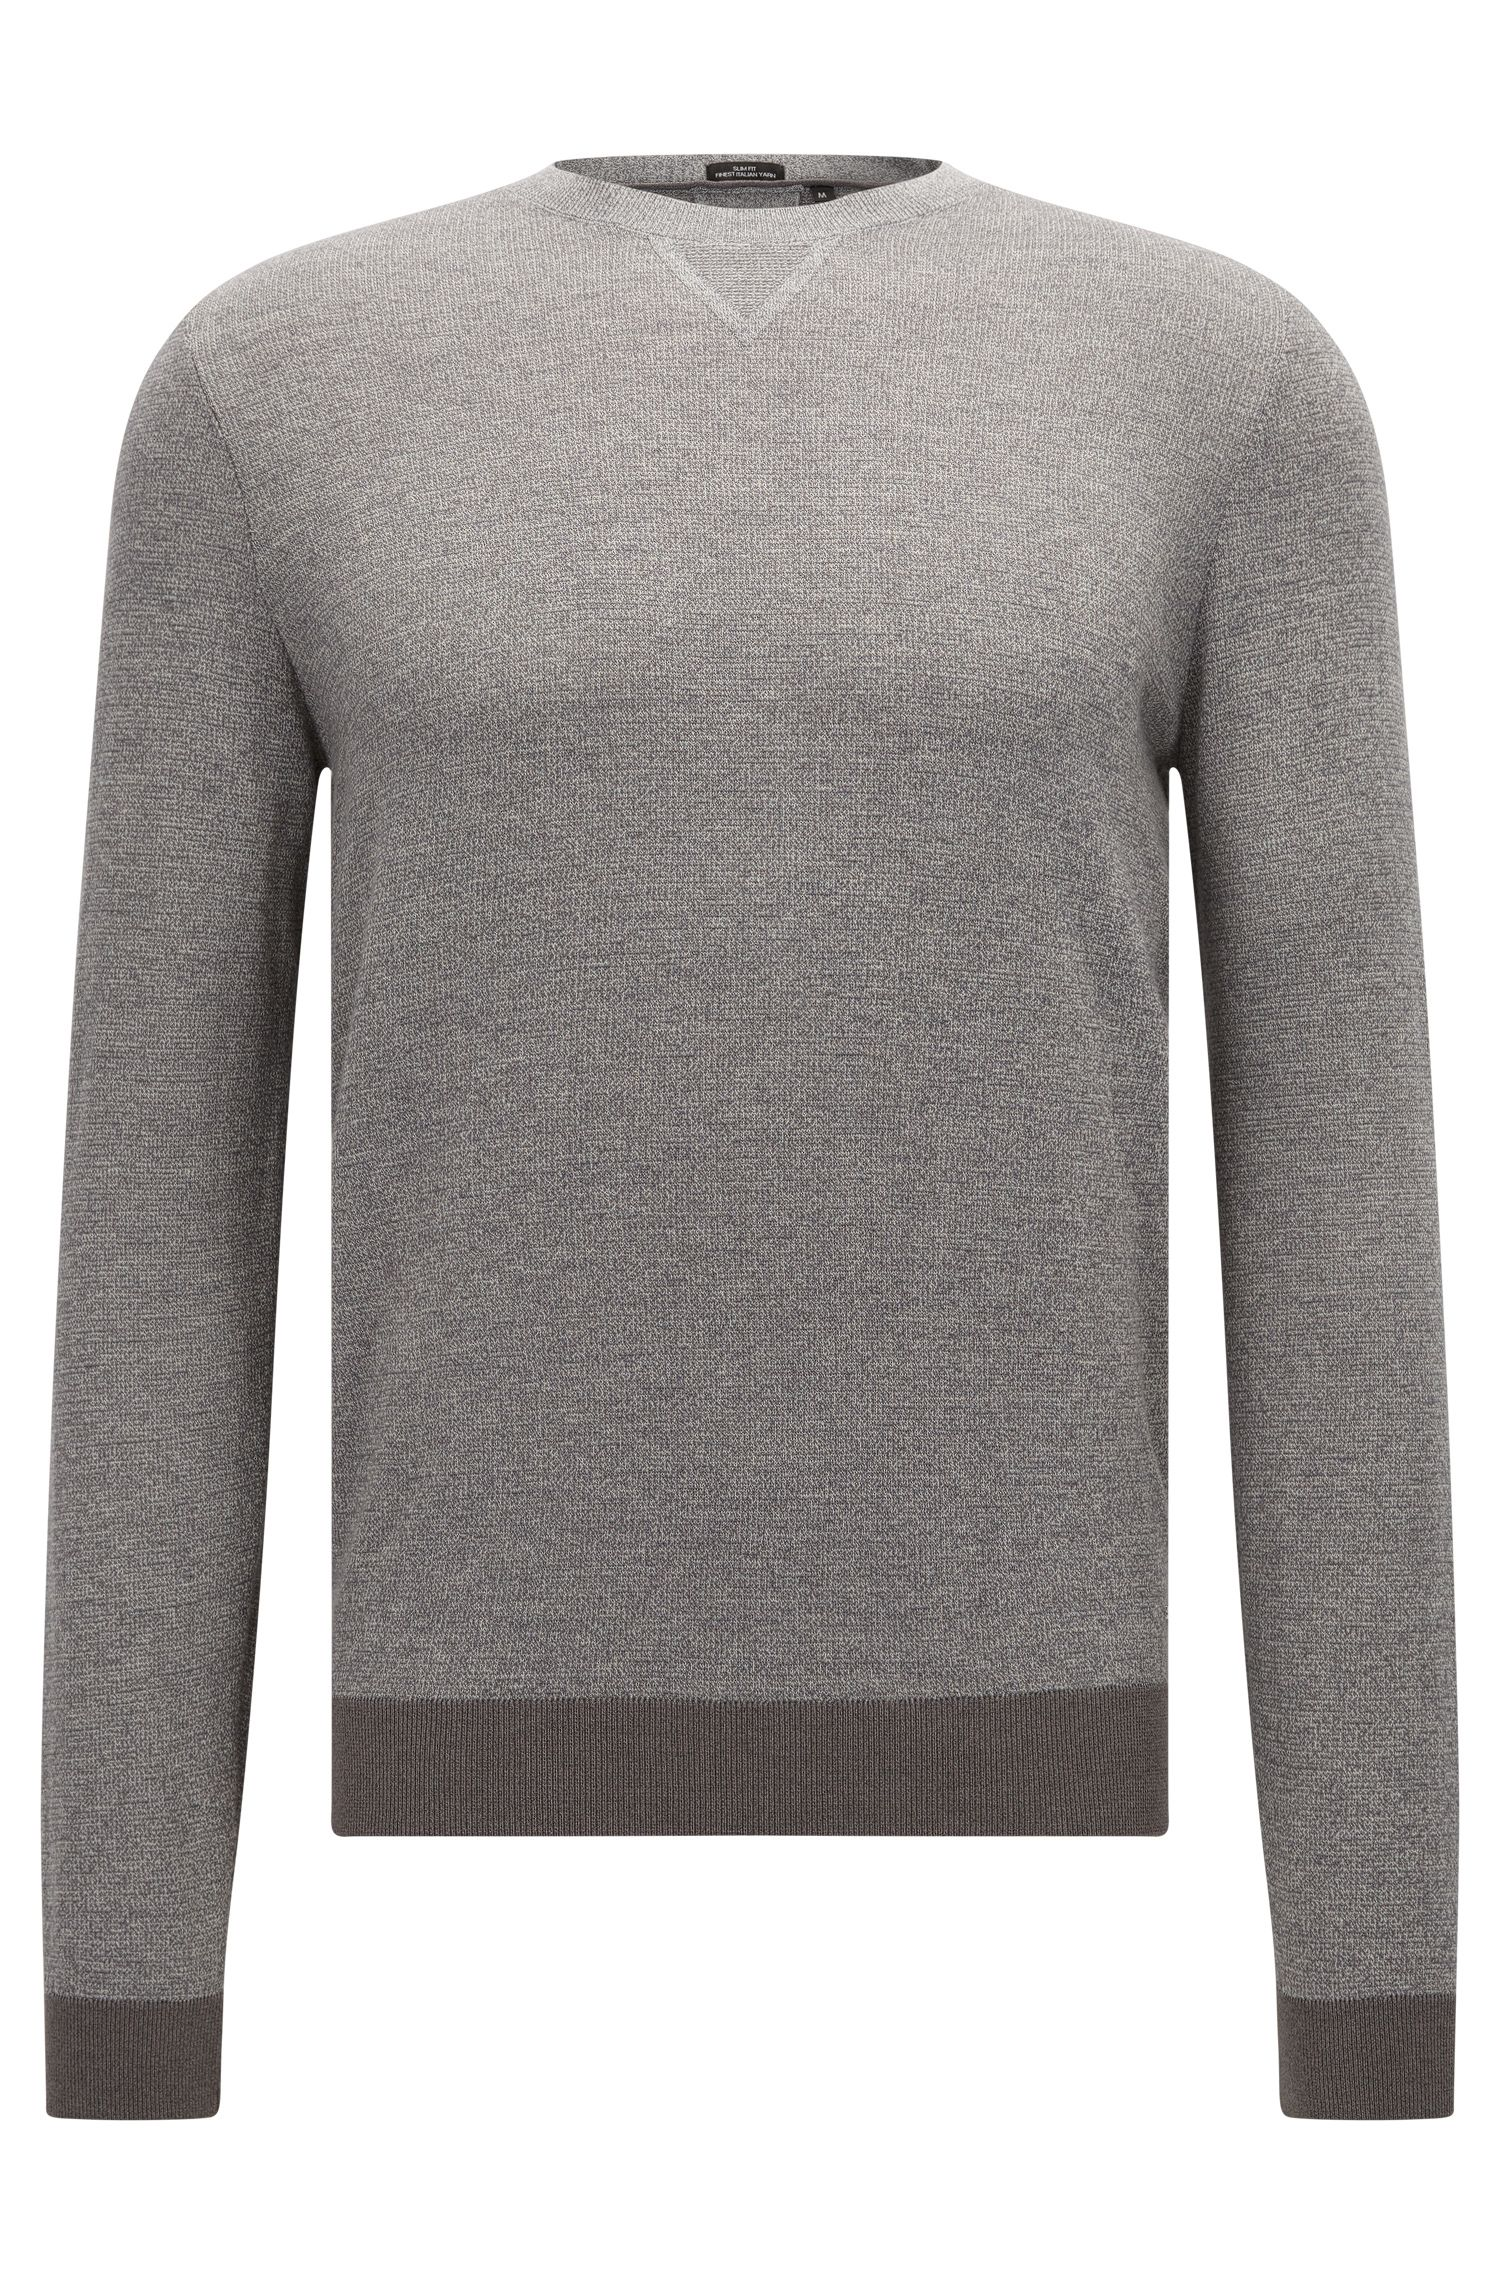 Slim-fit mouliné sweater in wool-cotton blend